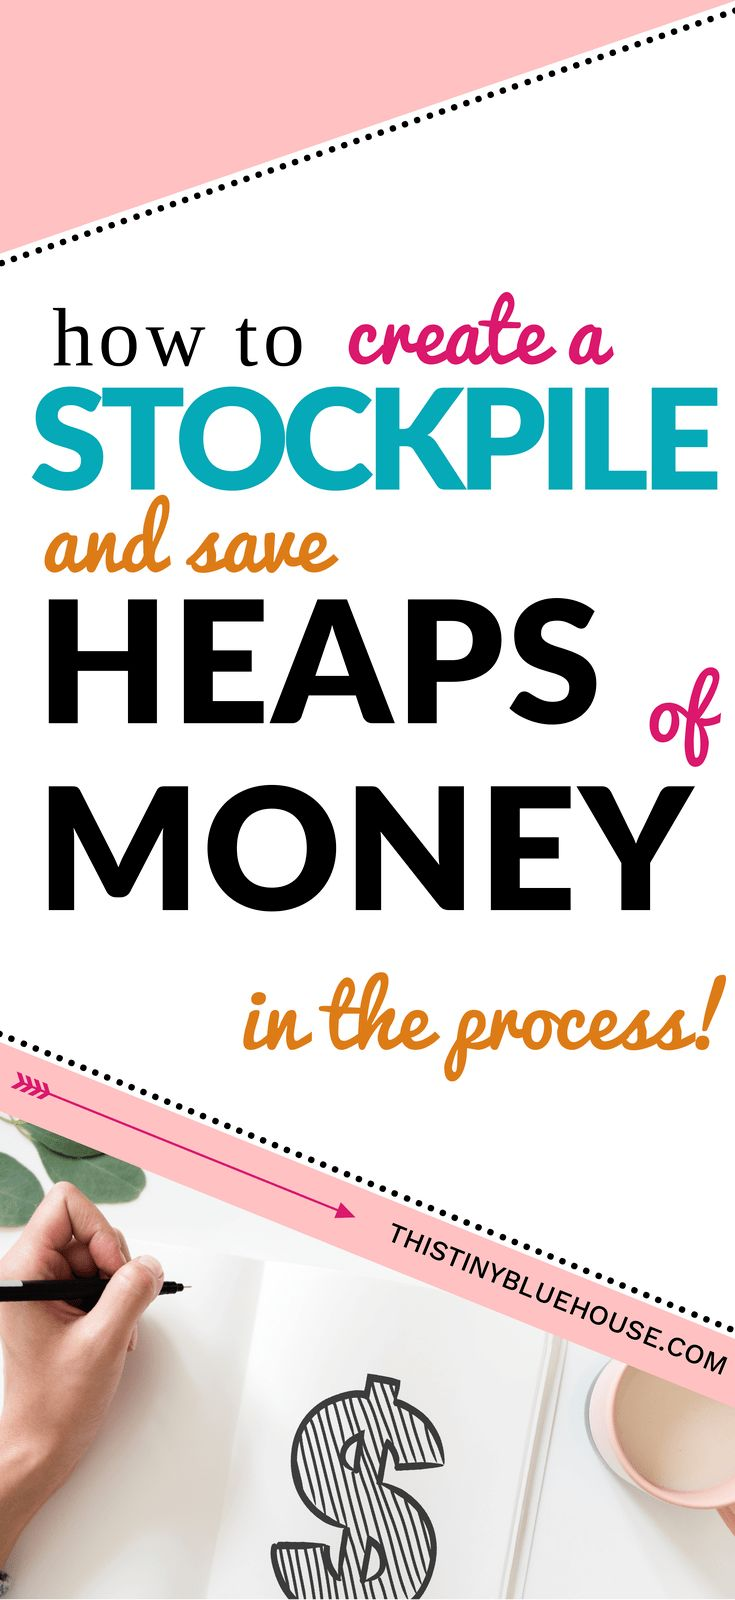 how to create a stockpile and save heaps of money in the process. You don't need to be an extreme couponer to pull off this easy stockpiling technique. Money Saving ideas | Money saving tips & tricks | Easy ways to save money